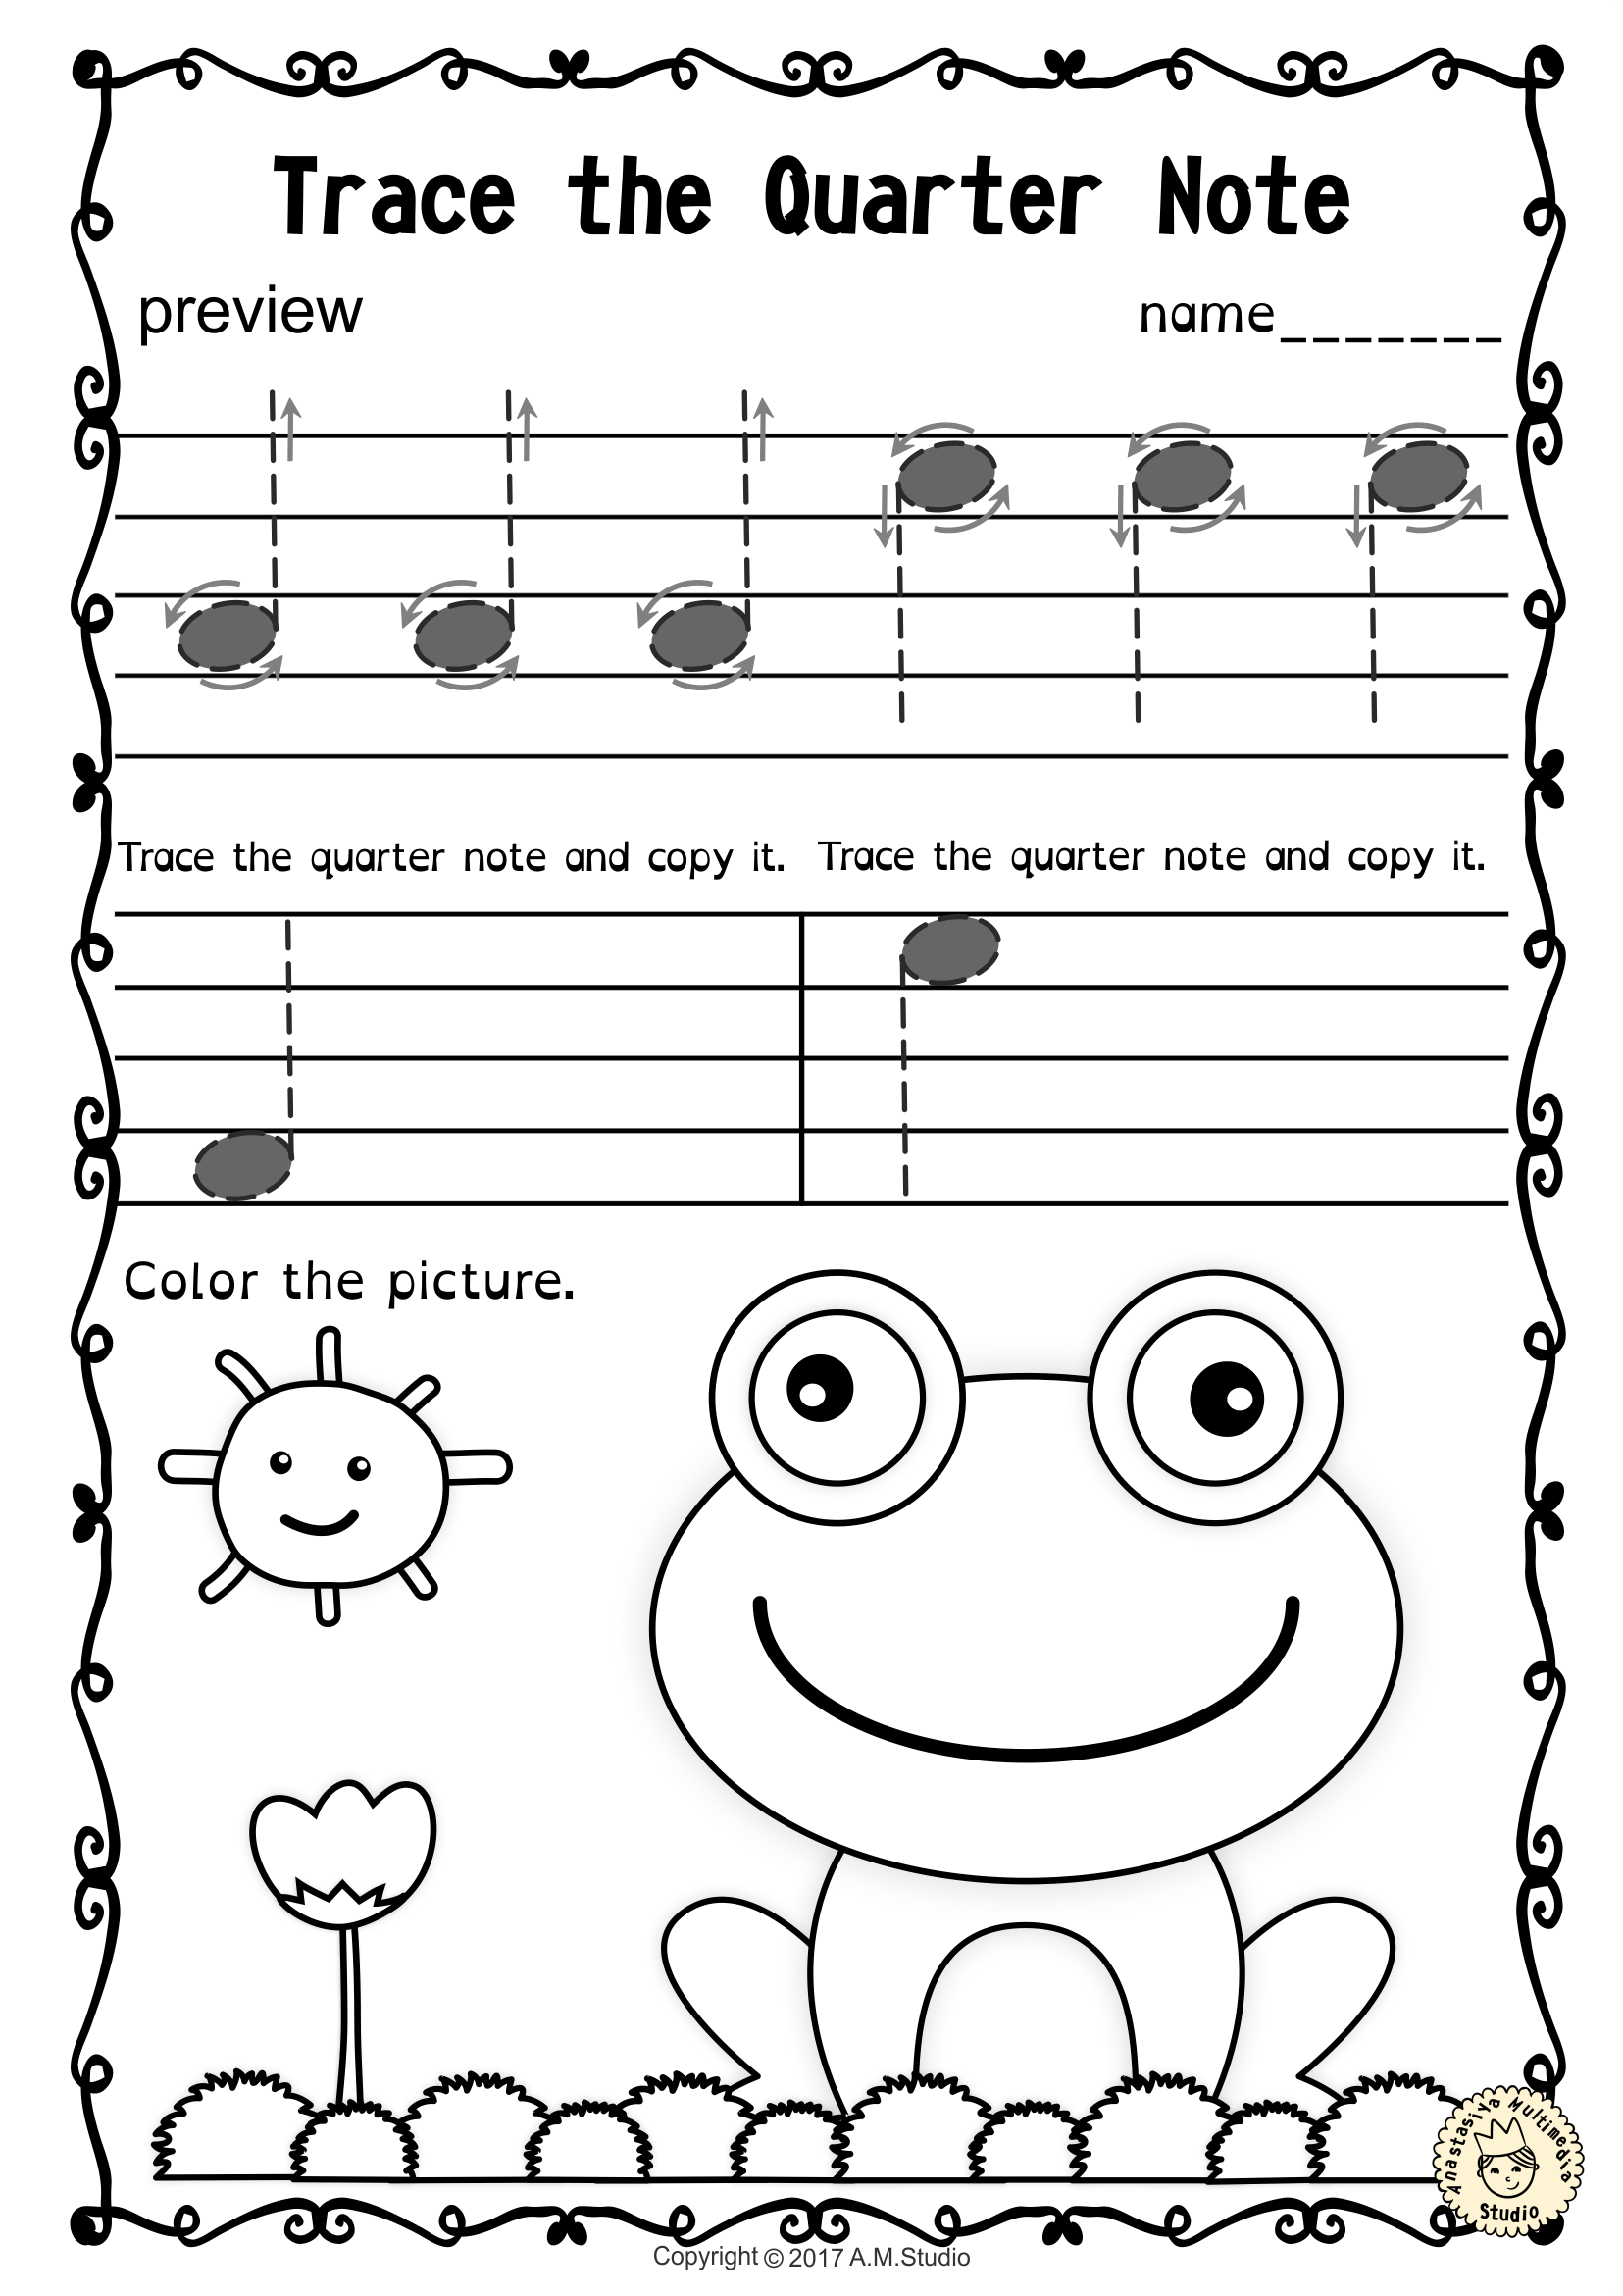 Tracing Music Notes Worksheets For Spring Elementary Music Worksheets Music Lessons For Kids Music Notes [ 2341 x 1655 Pixel ]